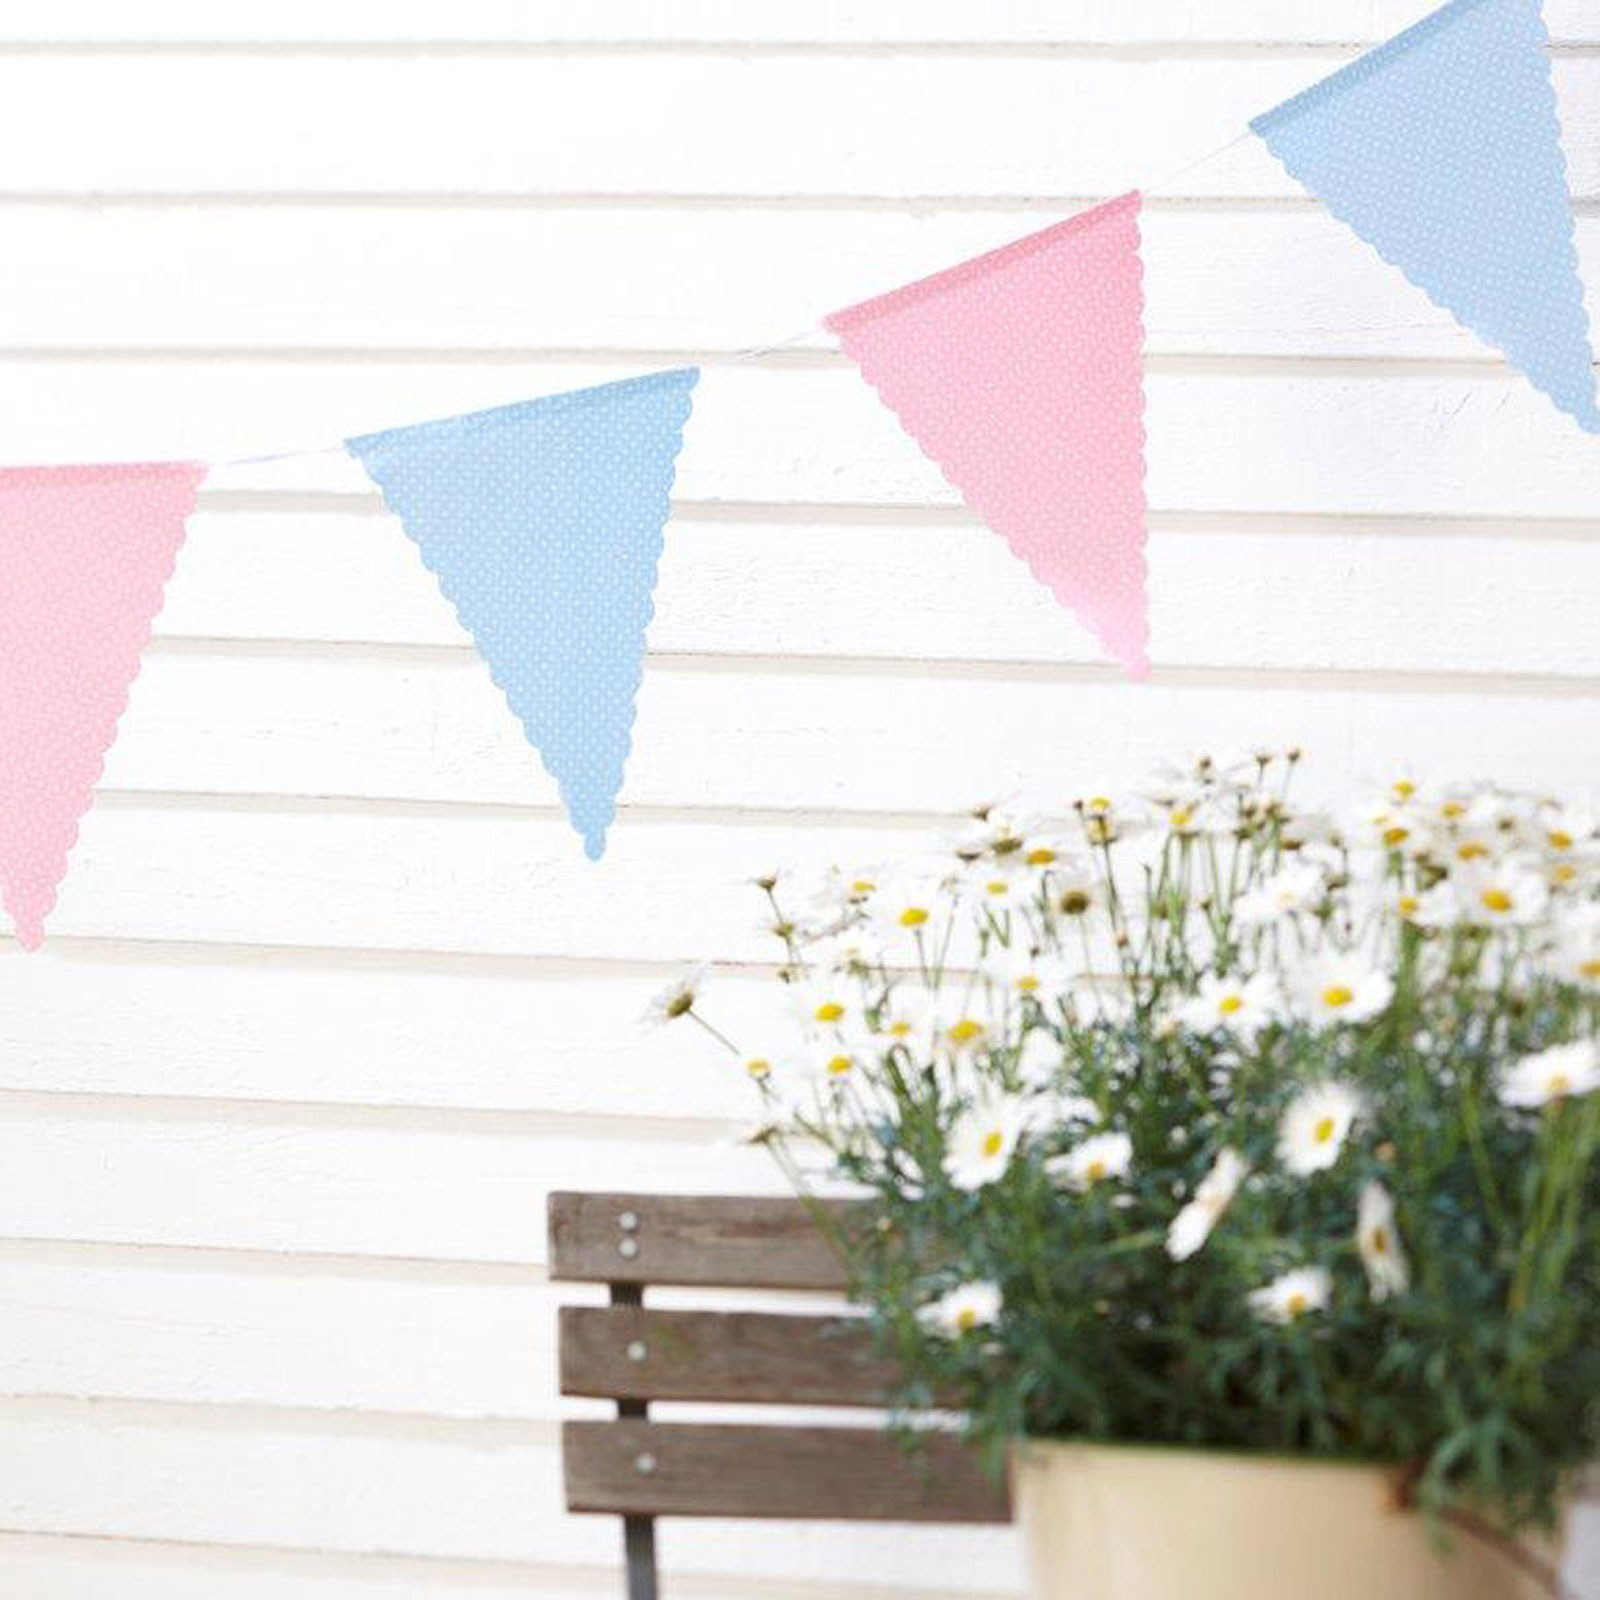 Vintage Rose Polka Dot Cotton Bunting